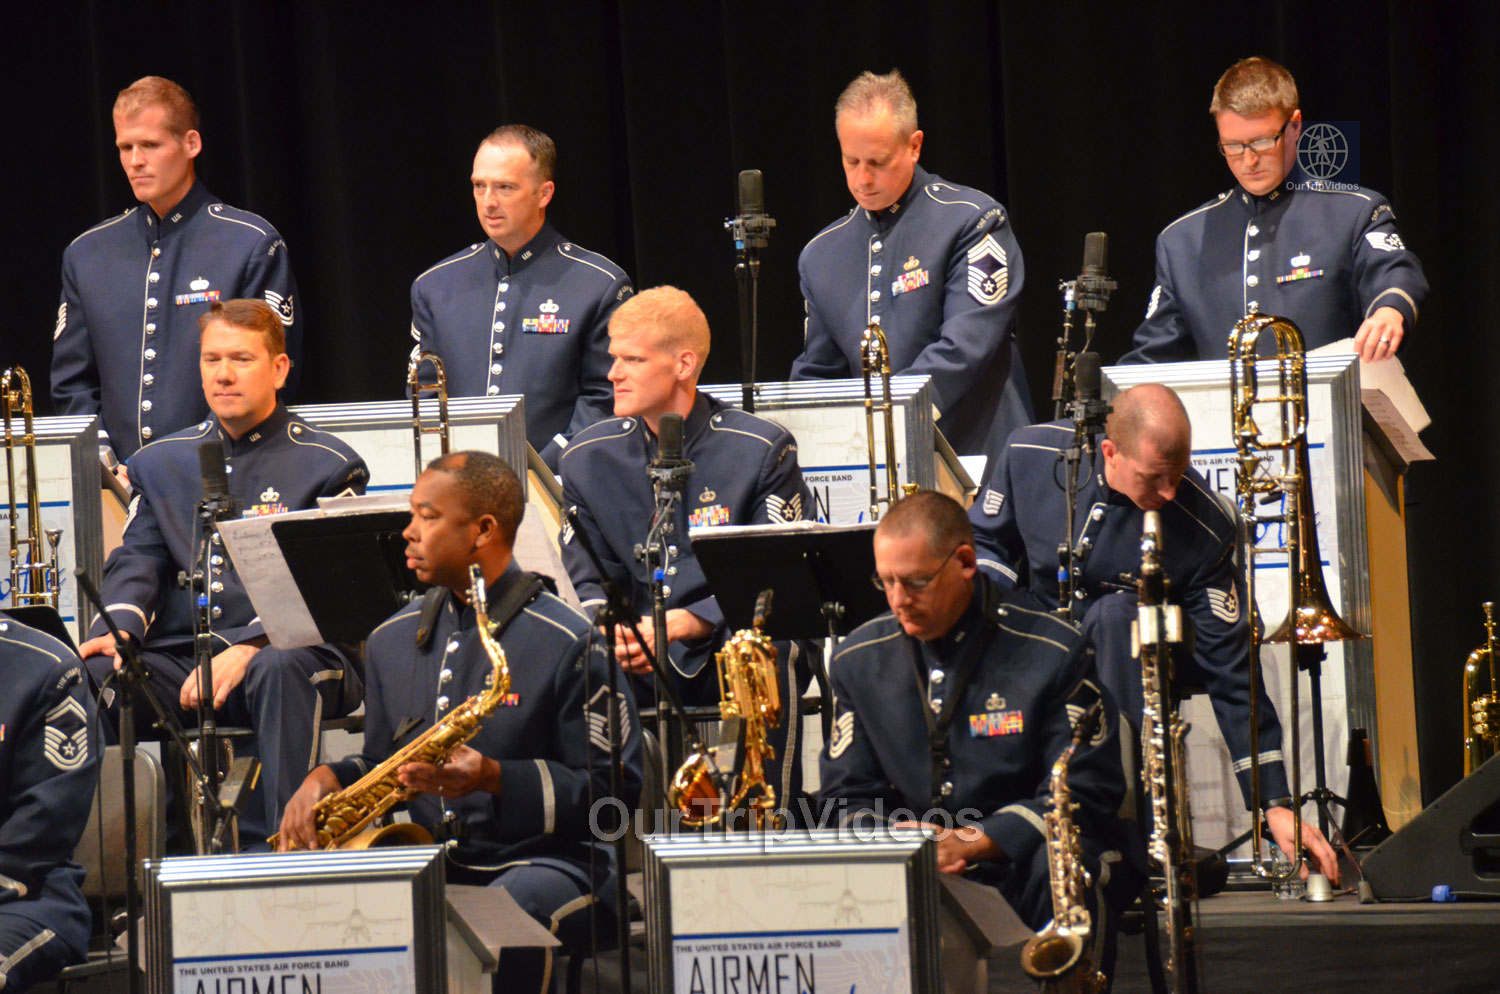 USAF Airmen of Note Live, Hayward, CA, USA - Picture 3 of 25